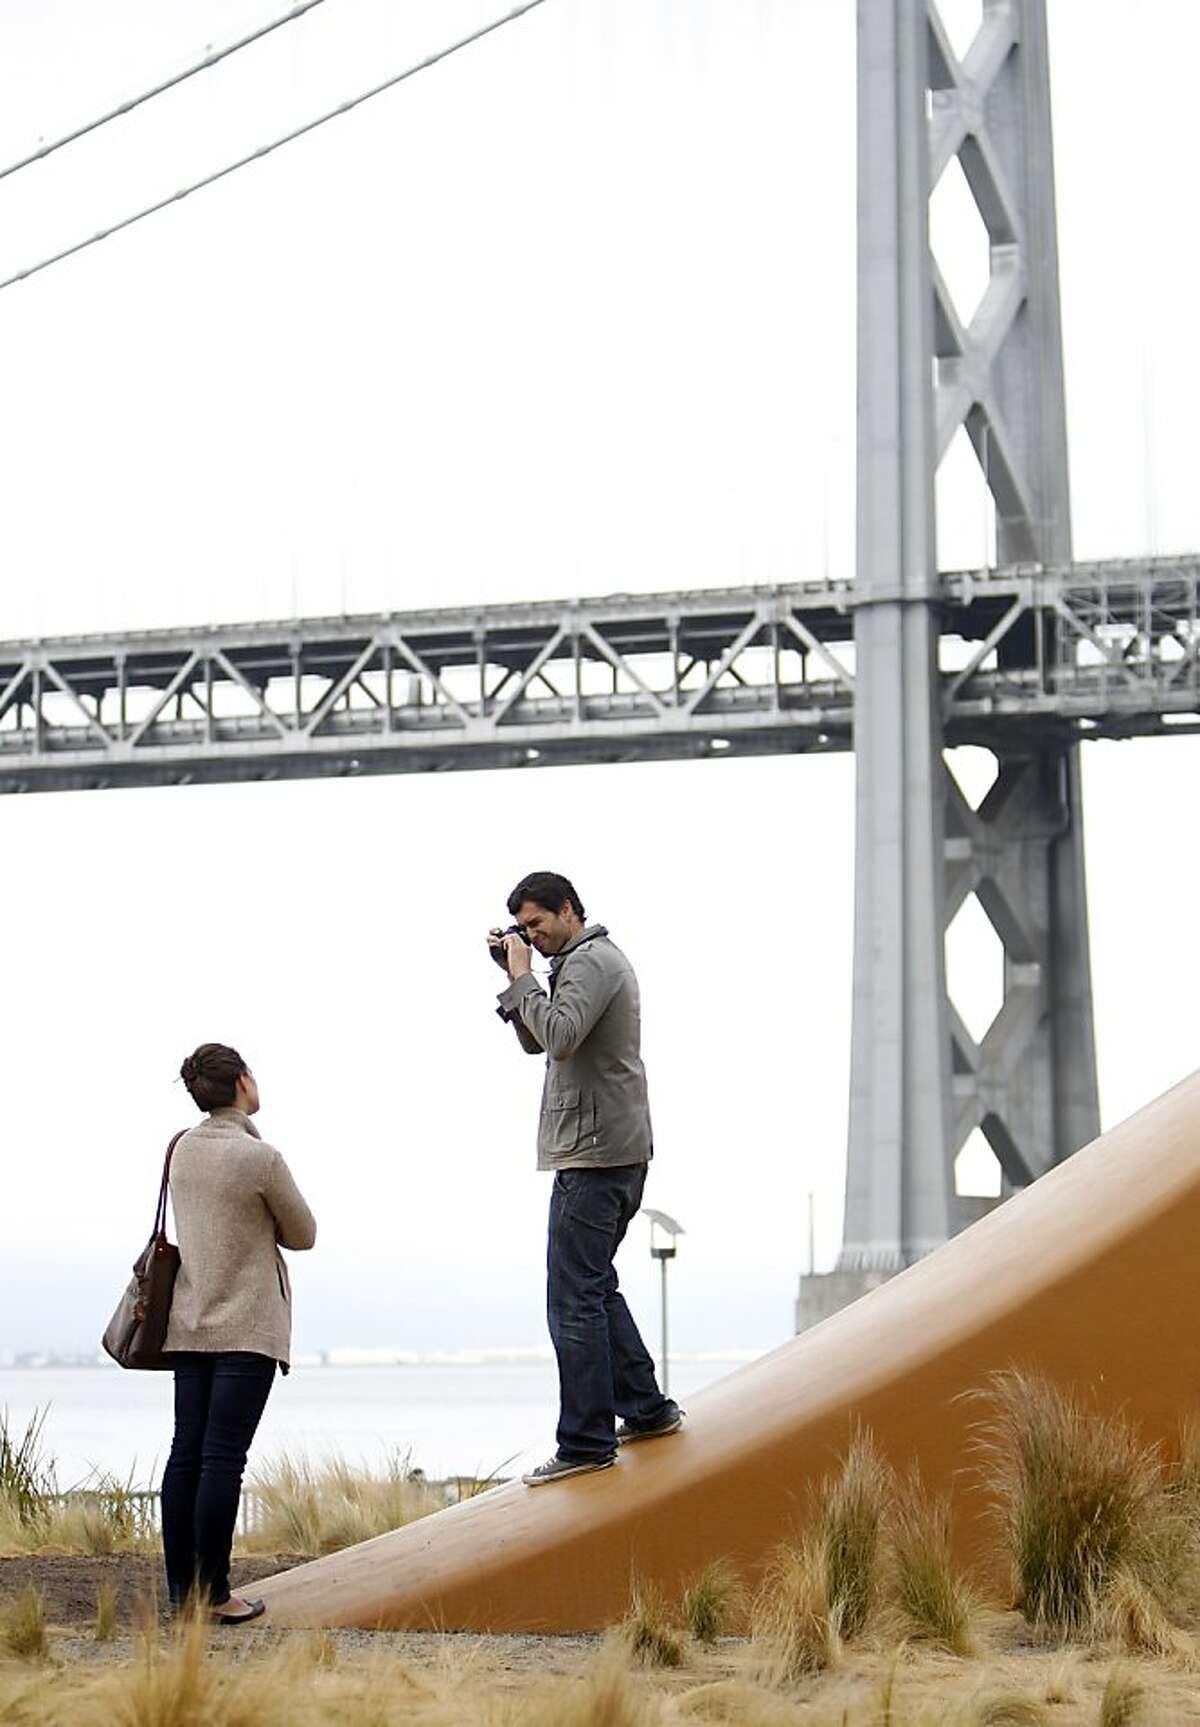 Michael Barrientos photographs Kristine Braun at the Cupid's Span by Claes Oldenburg and Coosje van Bruggen sculpture in San Francisco, Calif., on Monday, May 27, 2013.